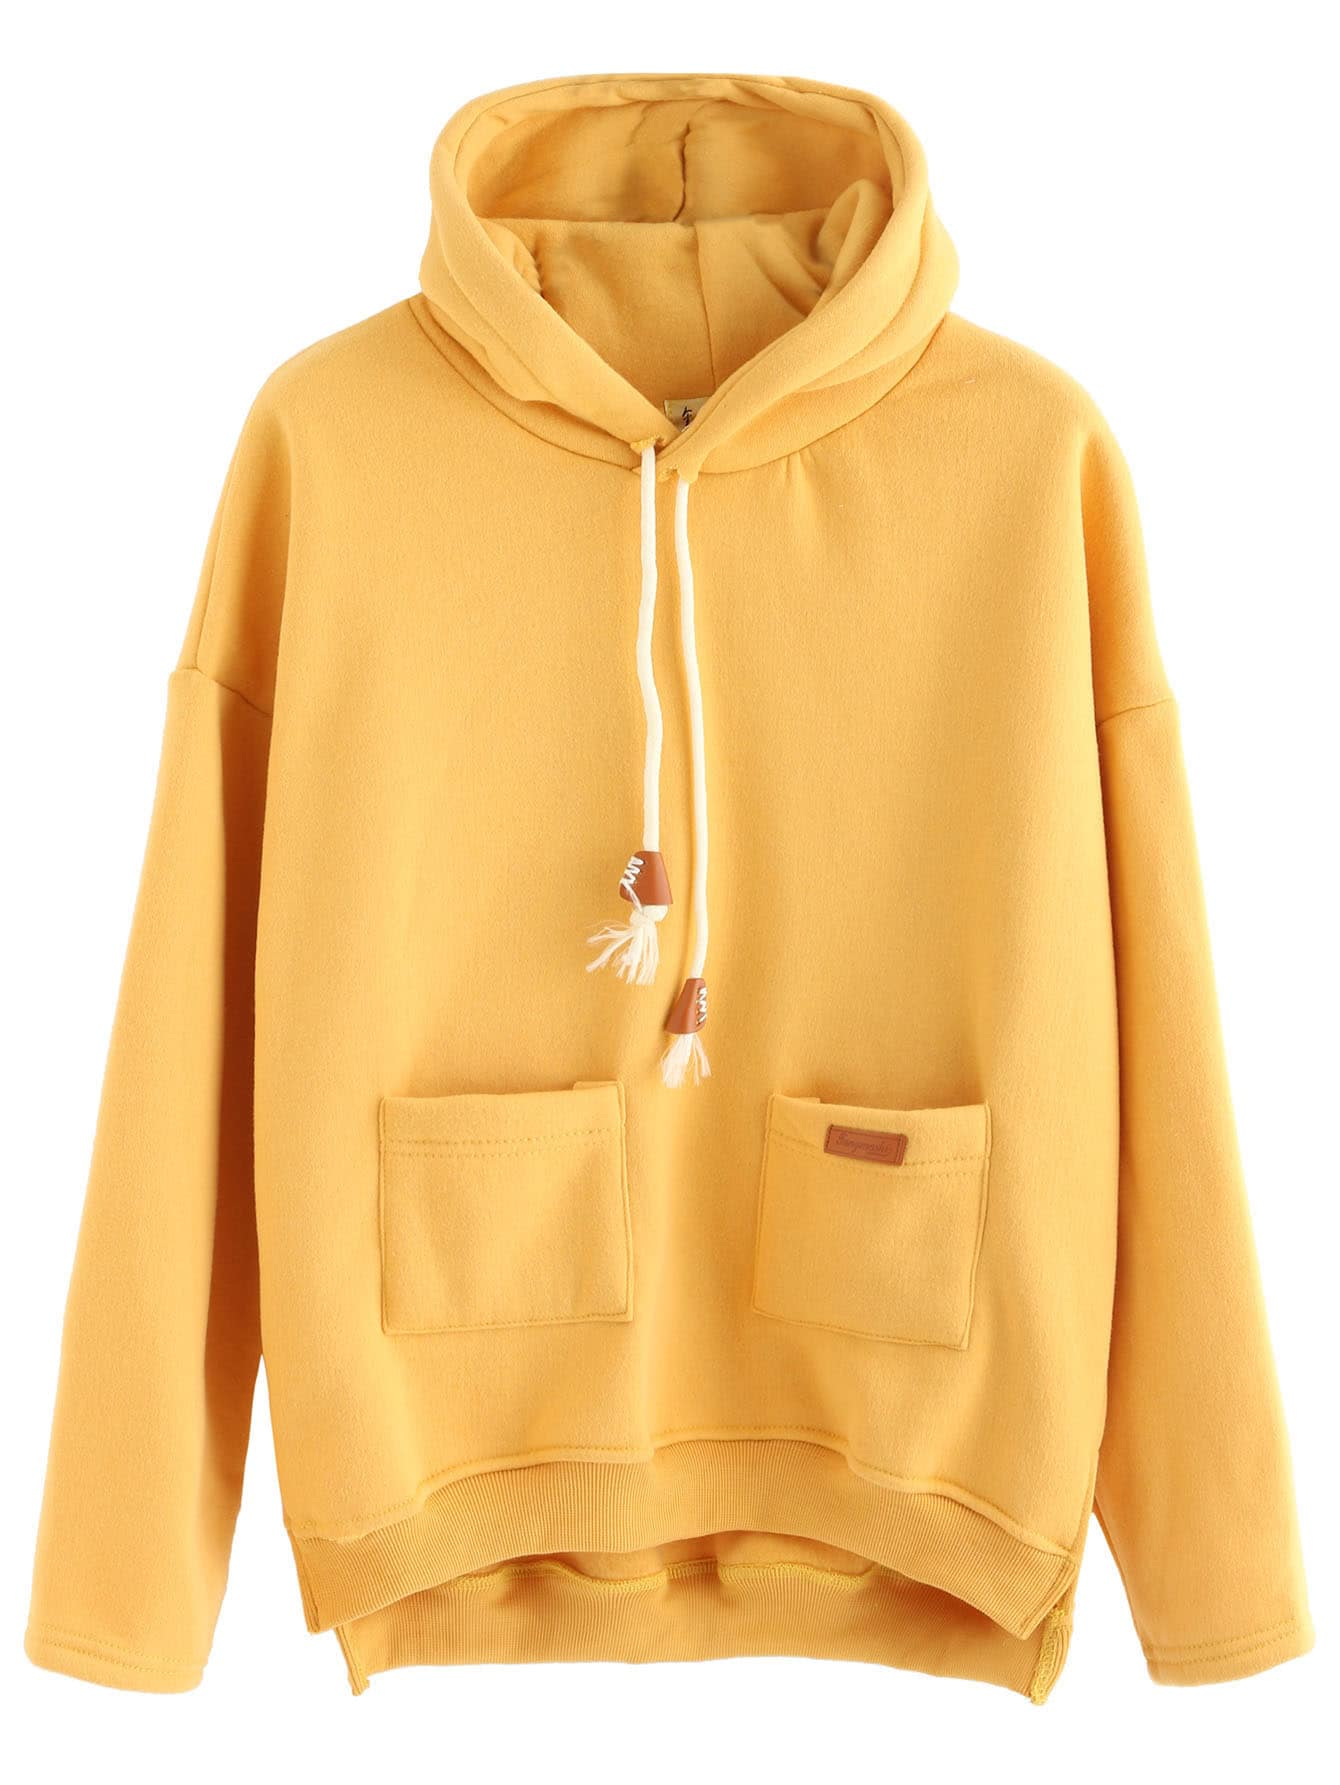 Yellow Slit Side High Low Hooded SweatshirtYellow Slit Side High Low Hooded Sweatshirt<br><br>color: Yellow<br>size: one-size